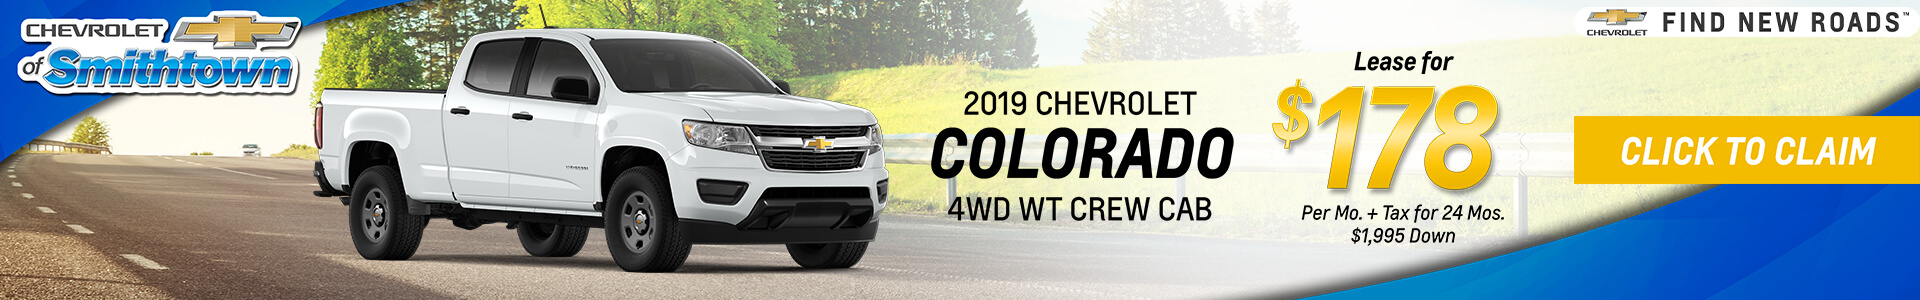 Chevrolet Colorado $178 Lease